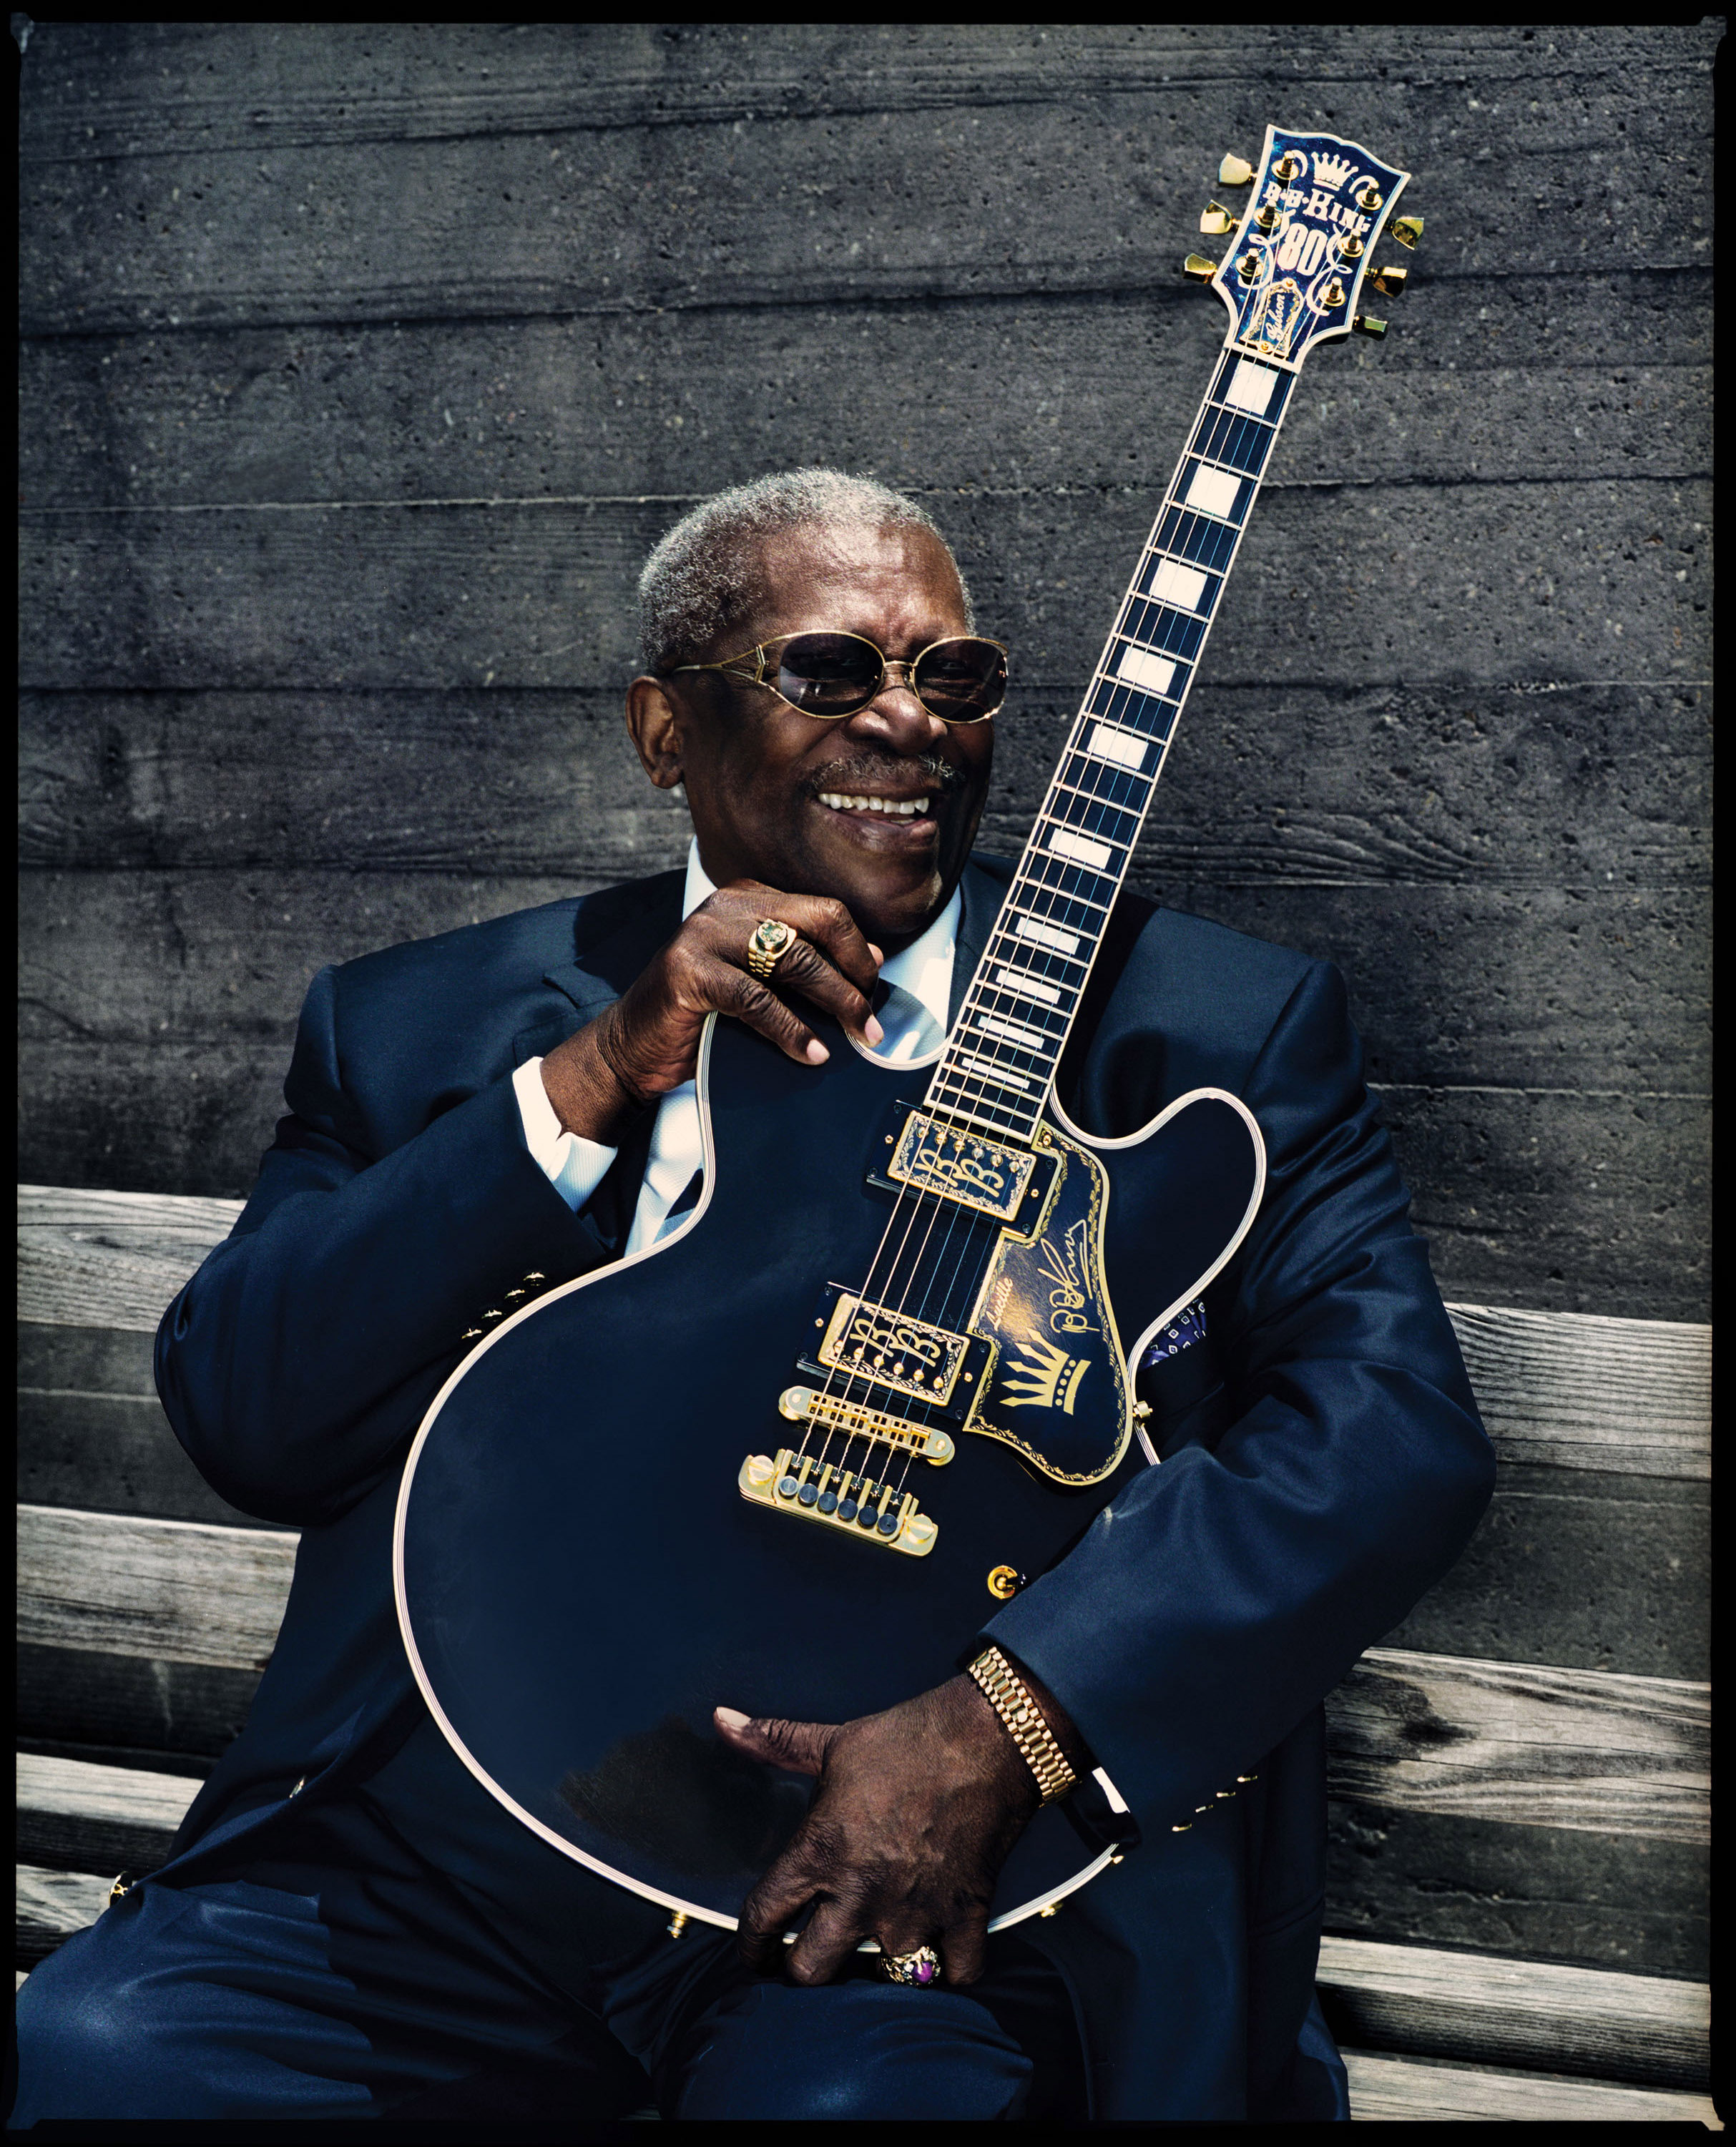 20 Facts You Didn't Know About B.B. King